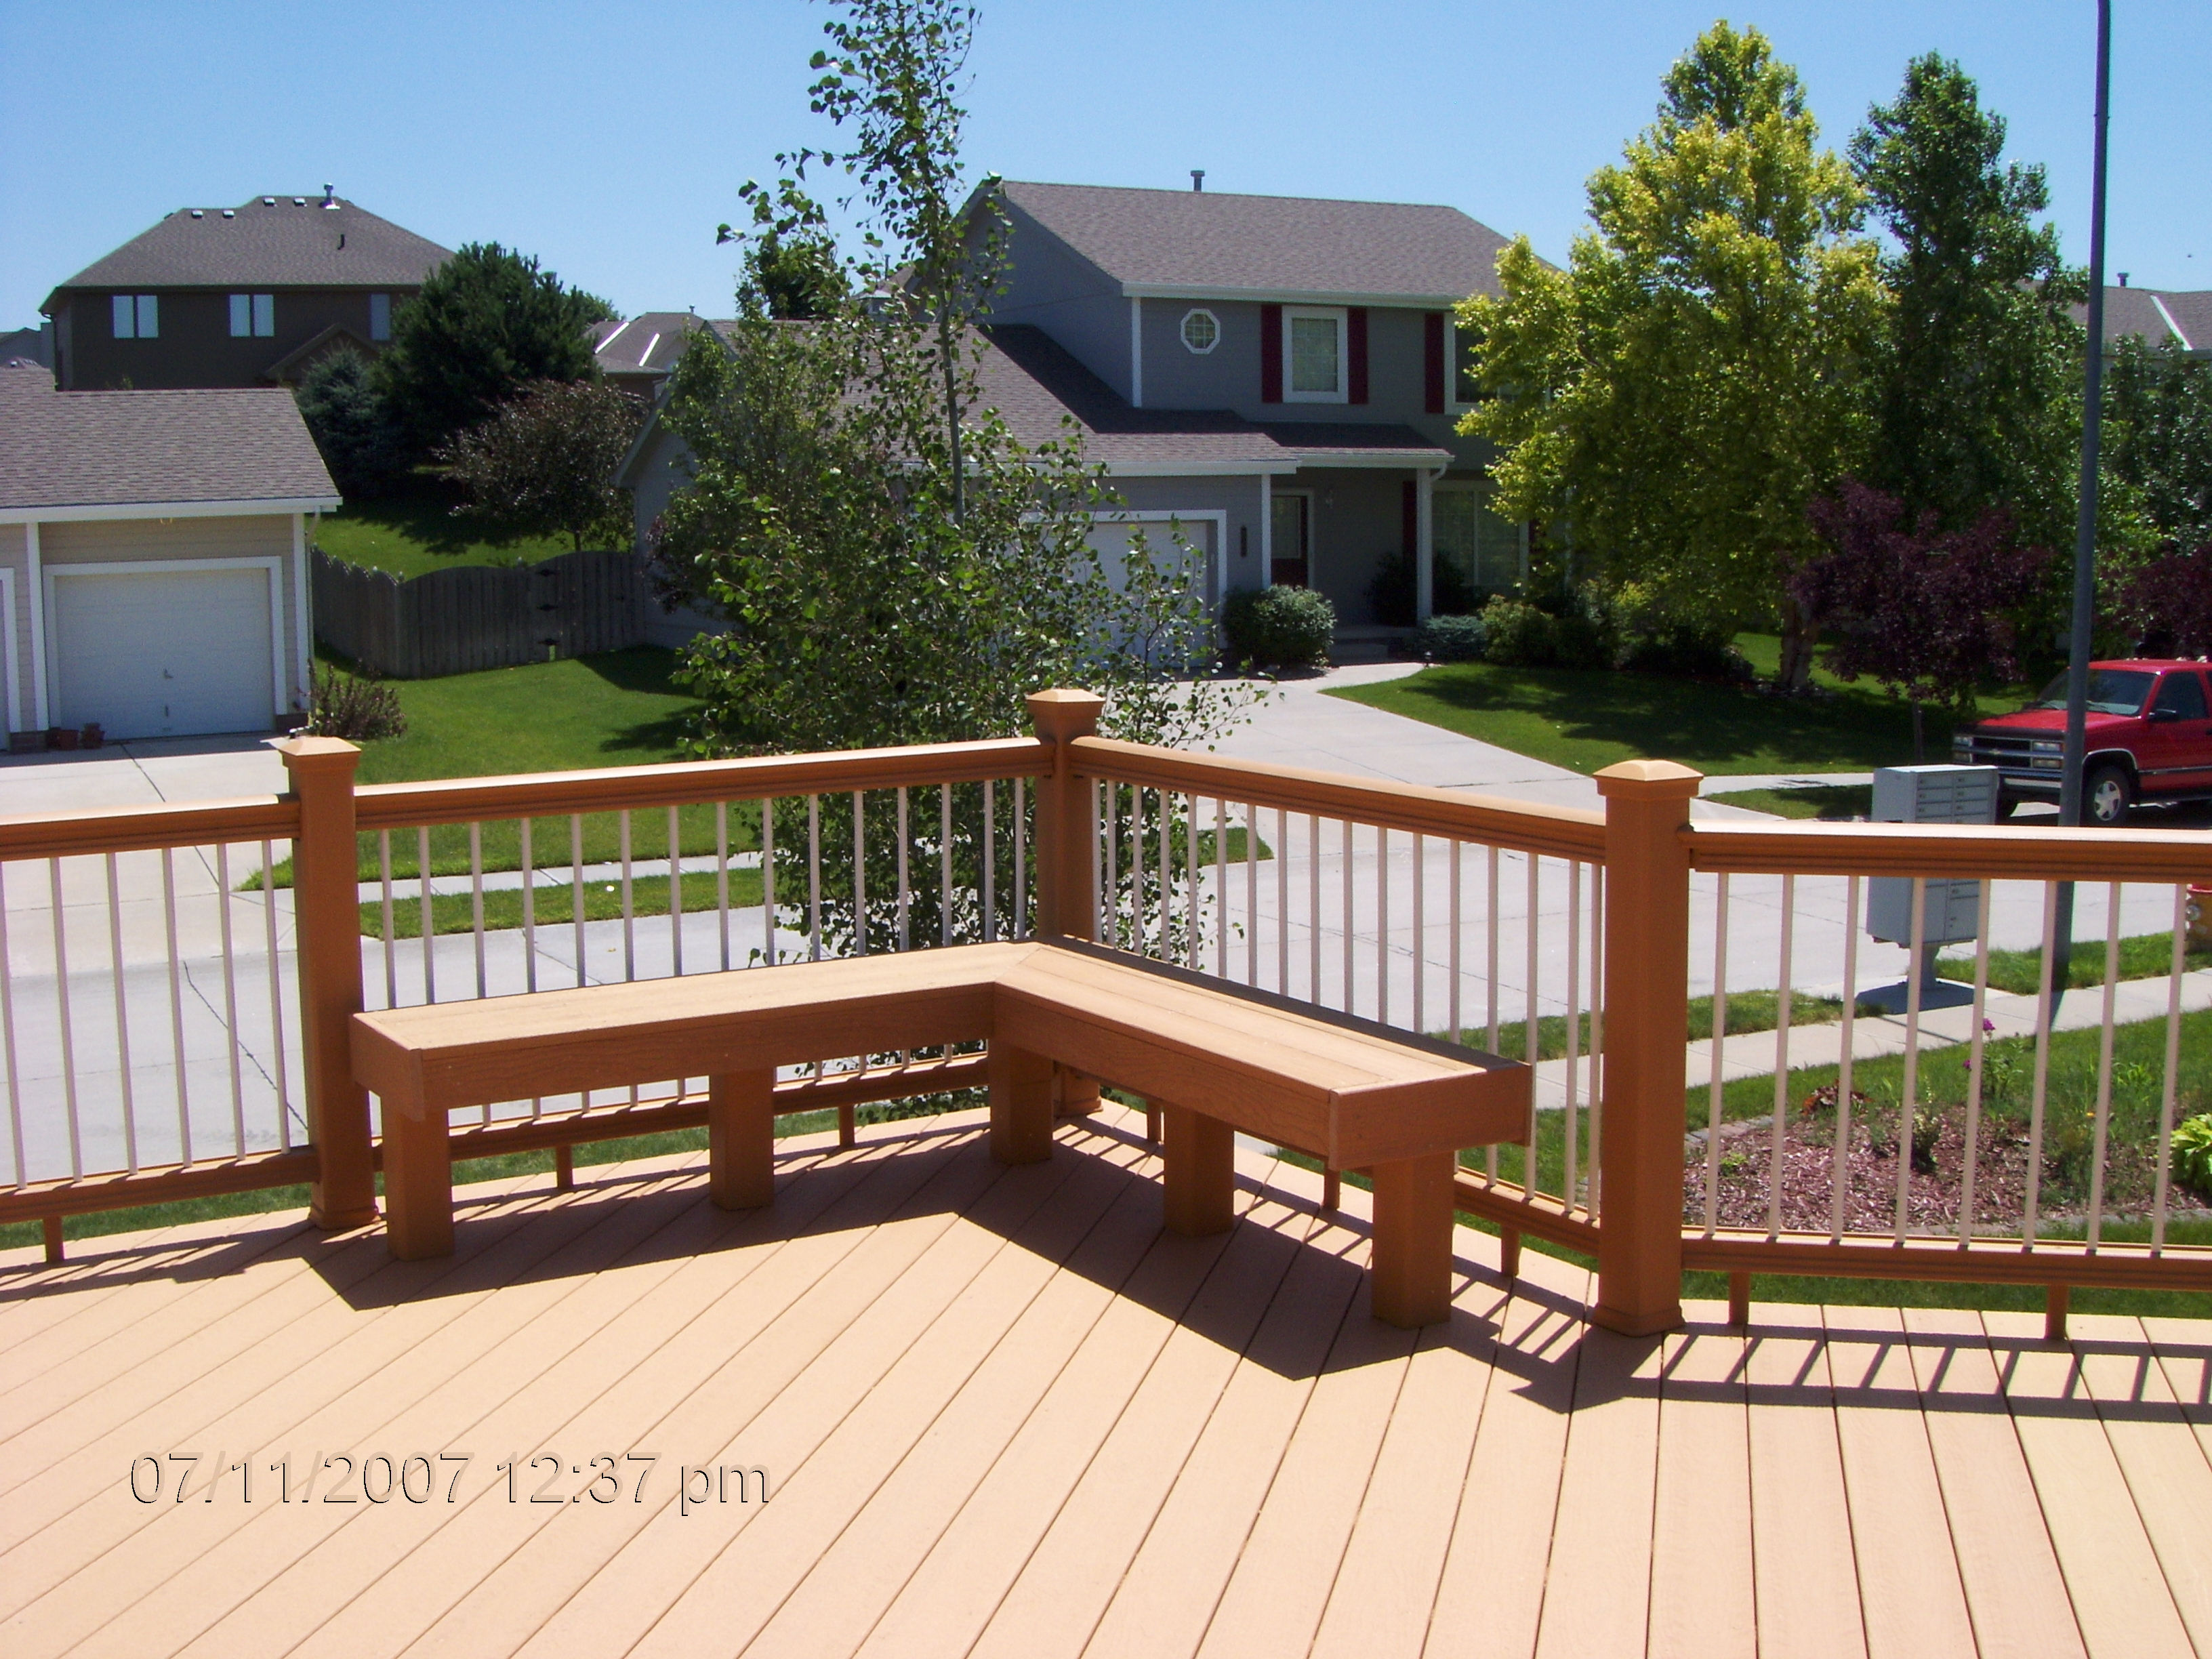 moccasin evergrain decking matched with white and mocca railing plus mocca bench ideas